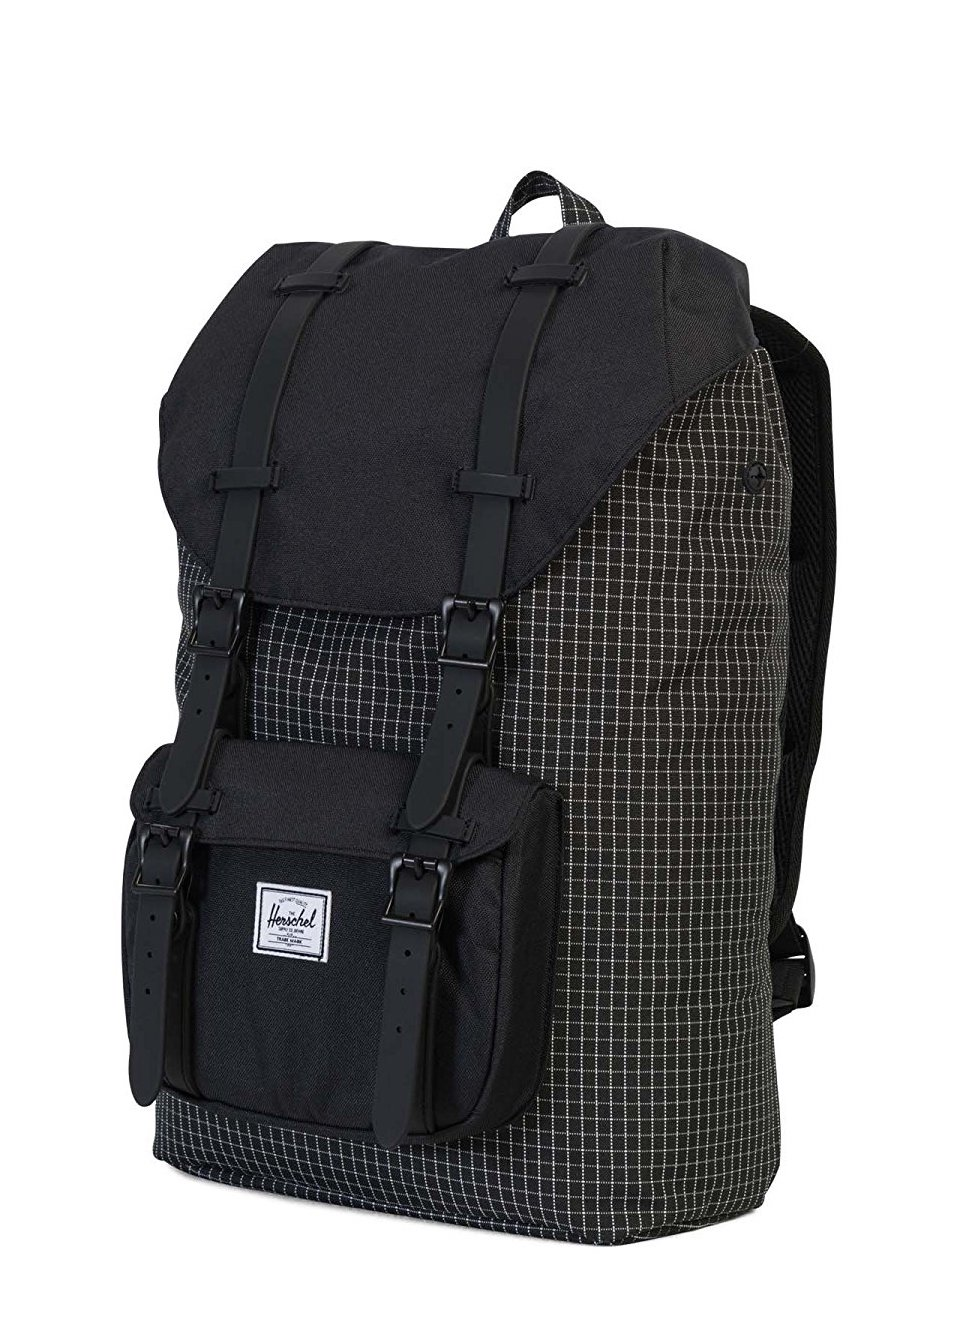 2b4fa49900 Herschel Supply Laptop backpacks on sale for Amazon Prime members!